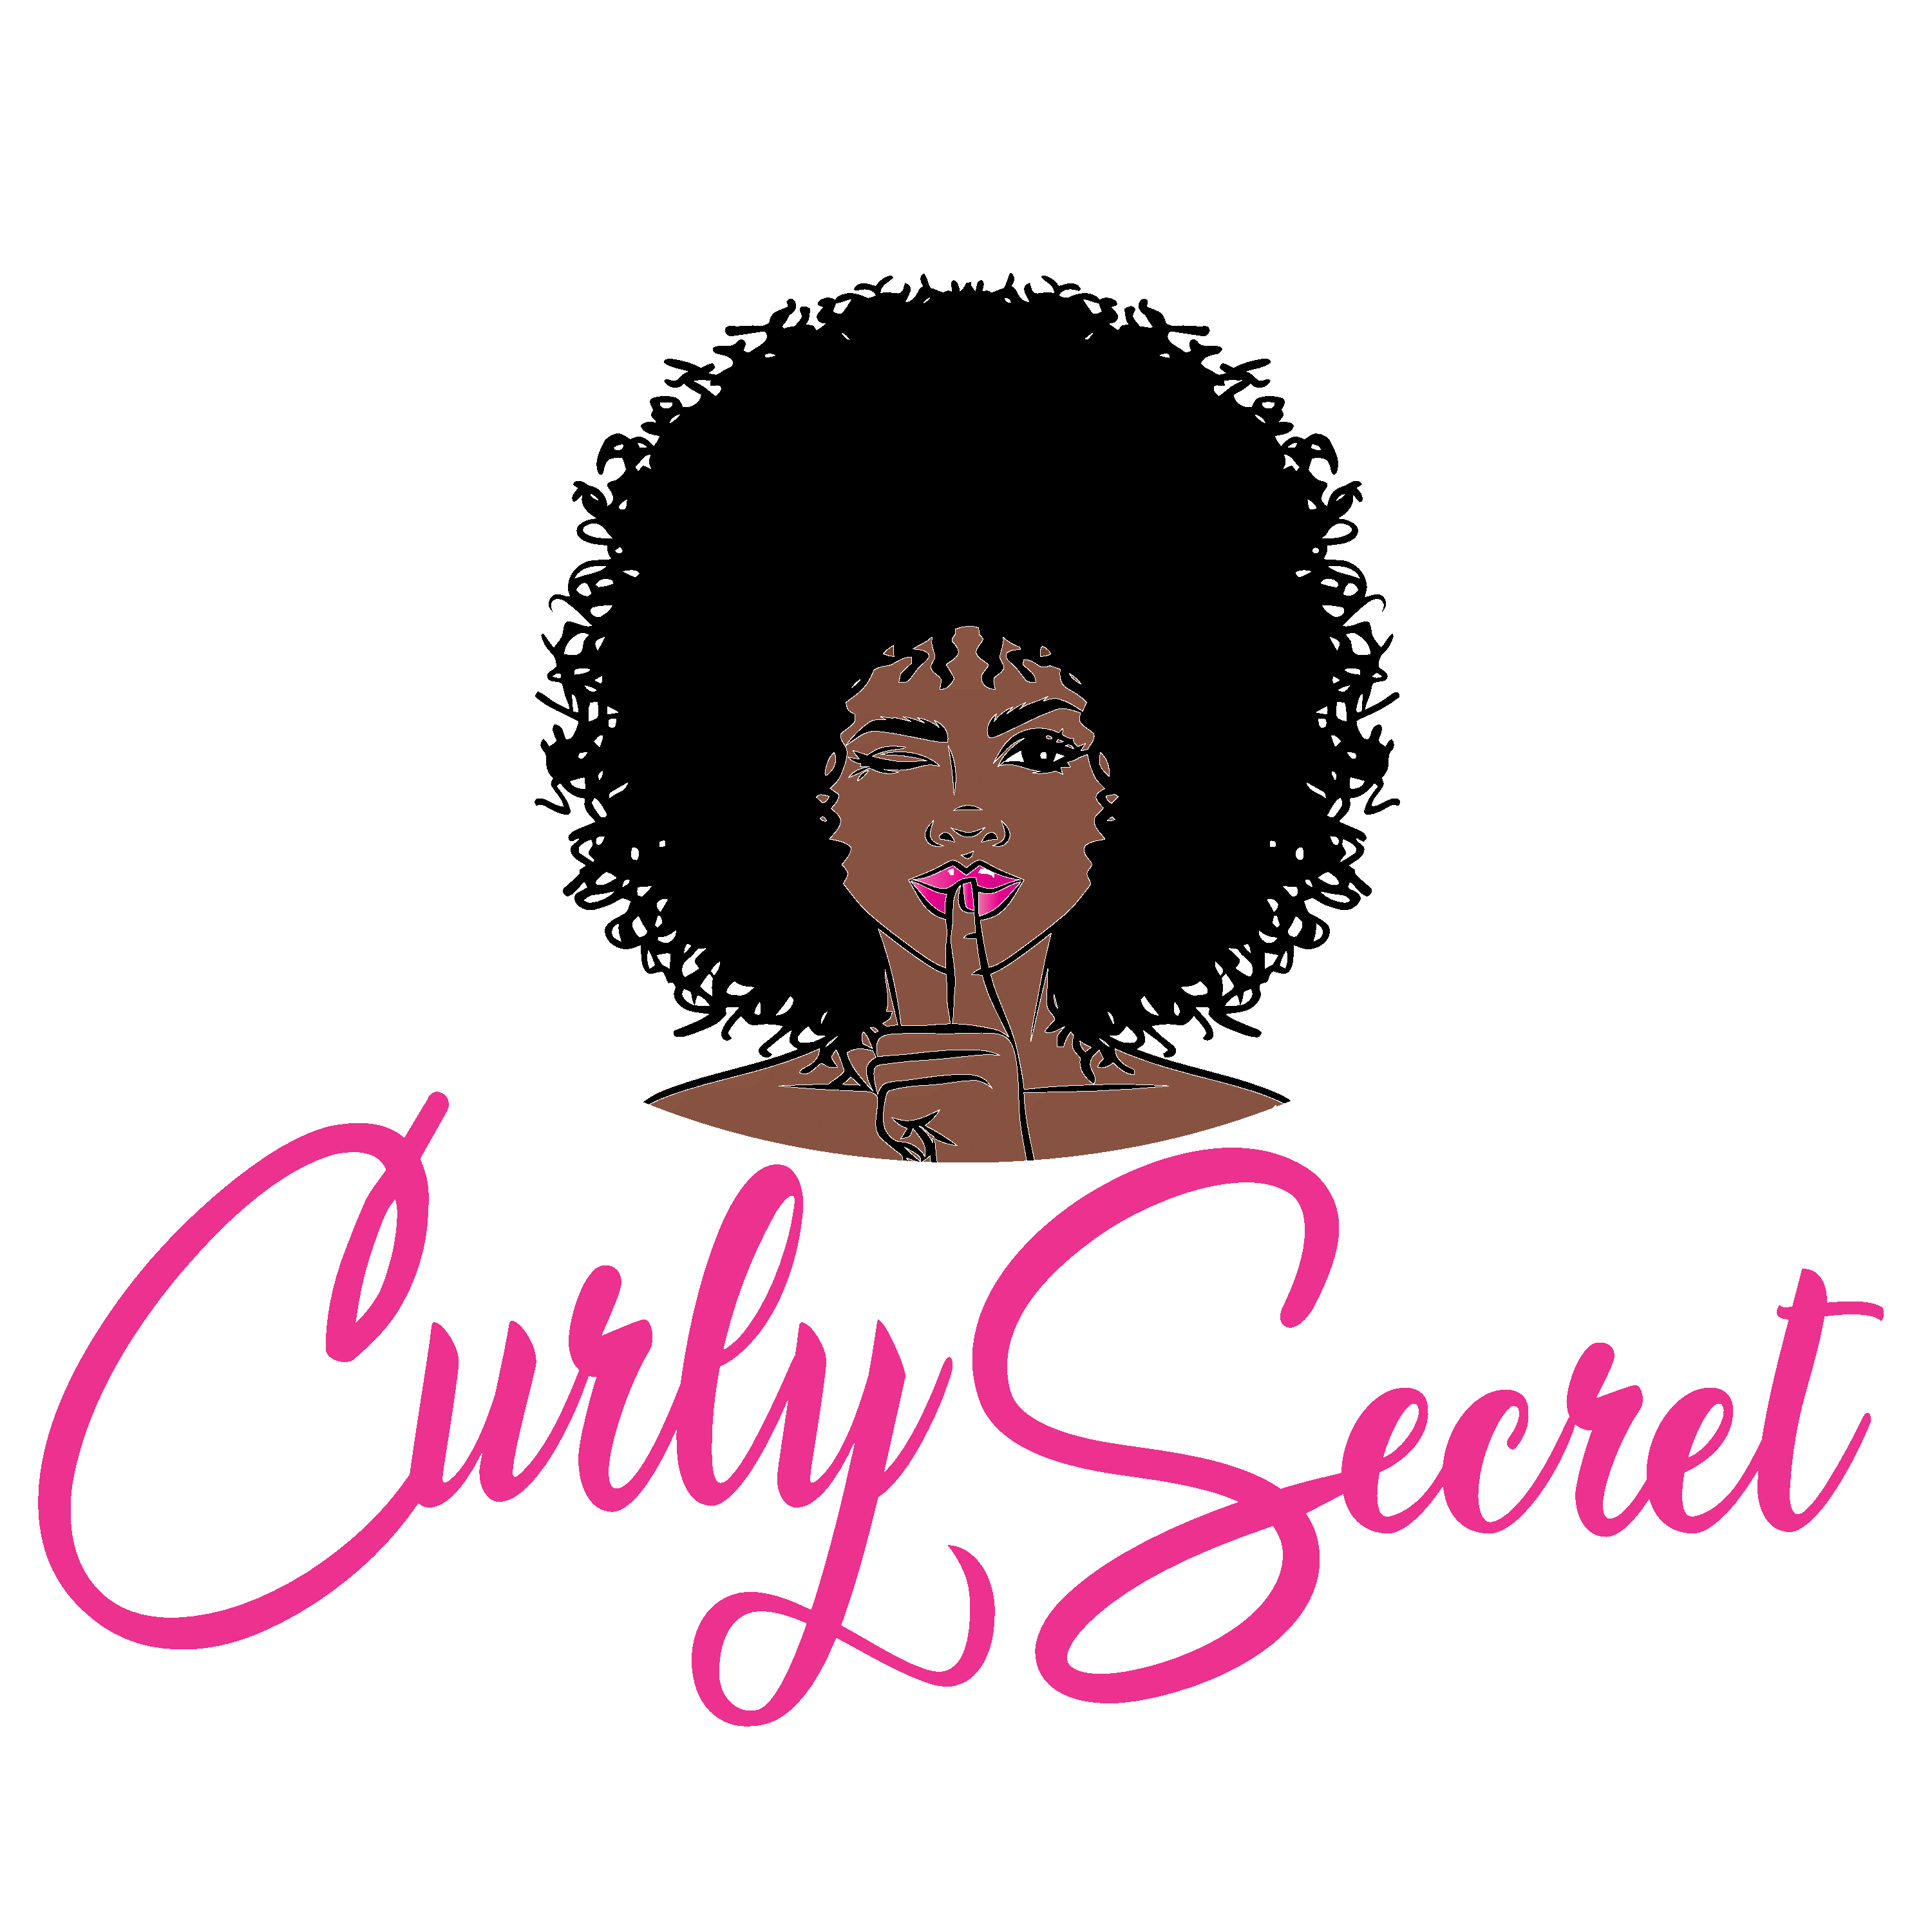 Curly Secret